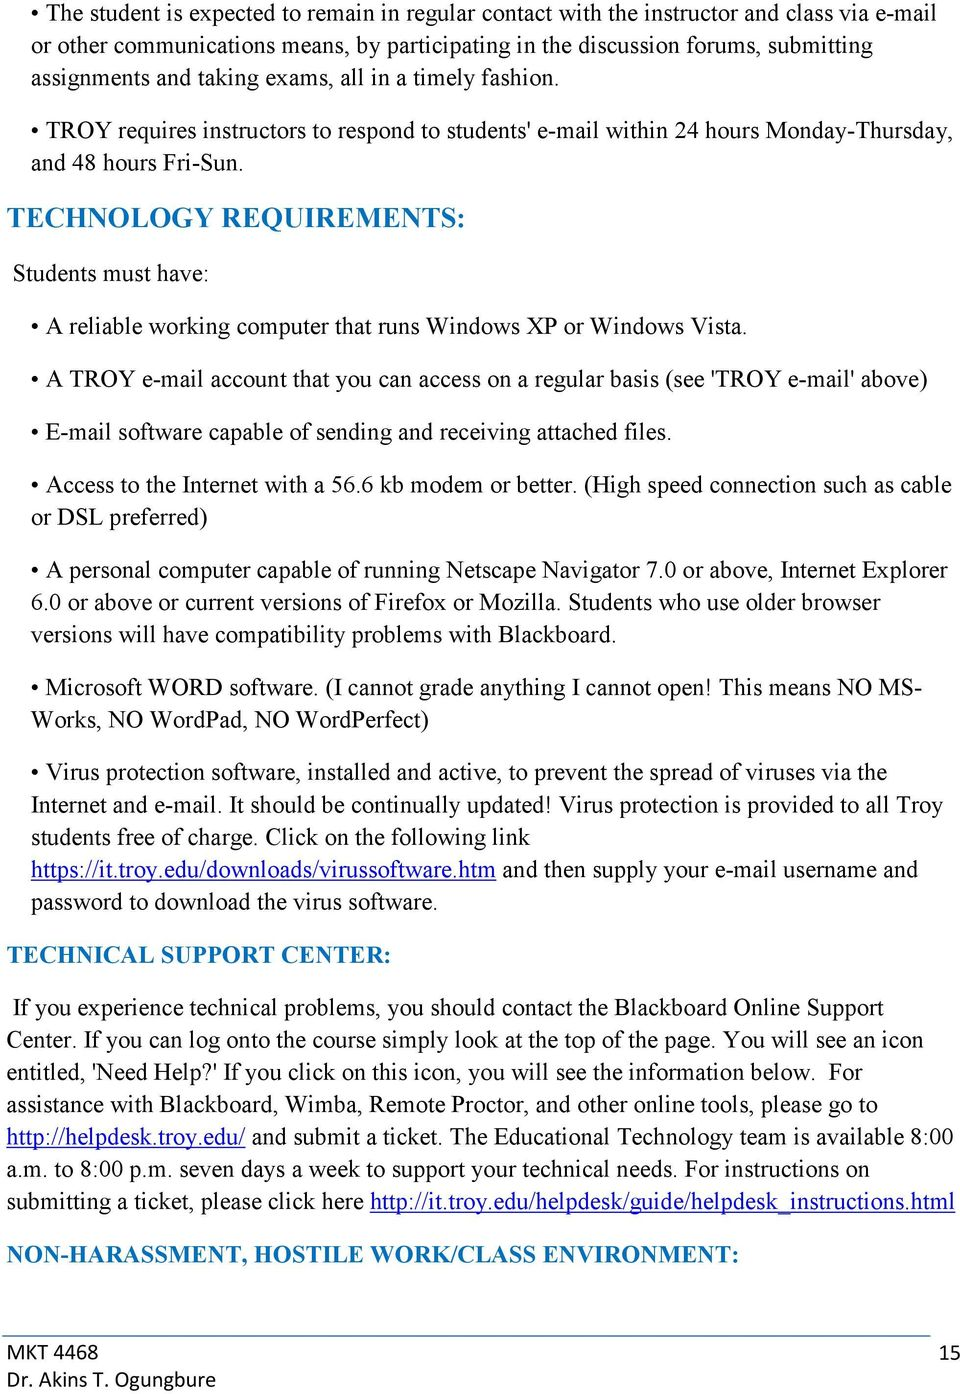 TECHNOLOGY REQUIREMENTS: Students must have: A reliable working computer that runs Windows XP or Windows Vista.